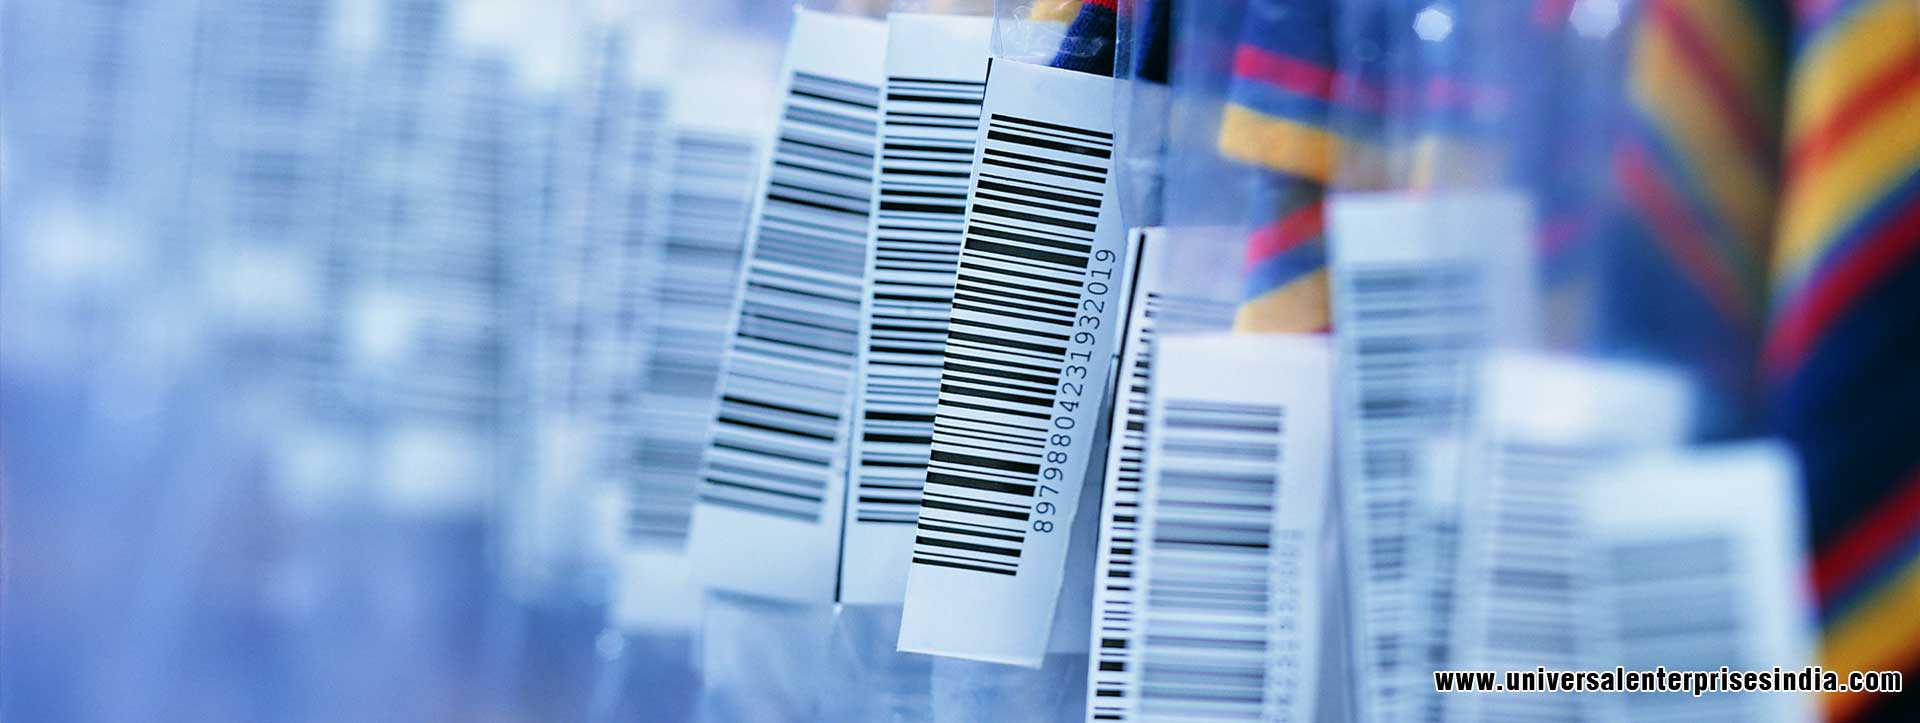 Garment Tags Garment Barcode Garment Labels Garment Stickers manufacturers suppliers dealers in ludhiana Punjab India